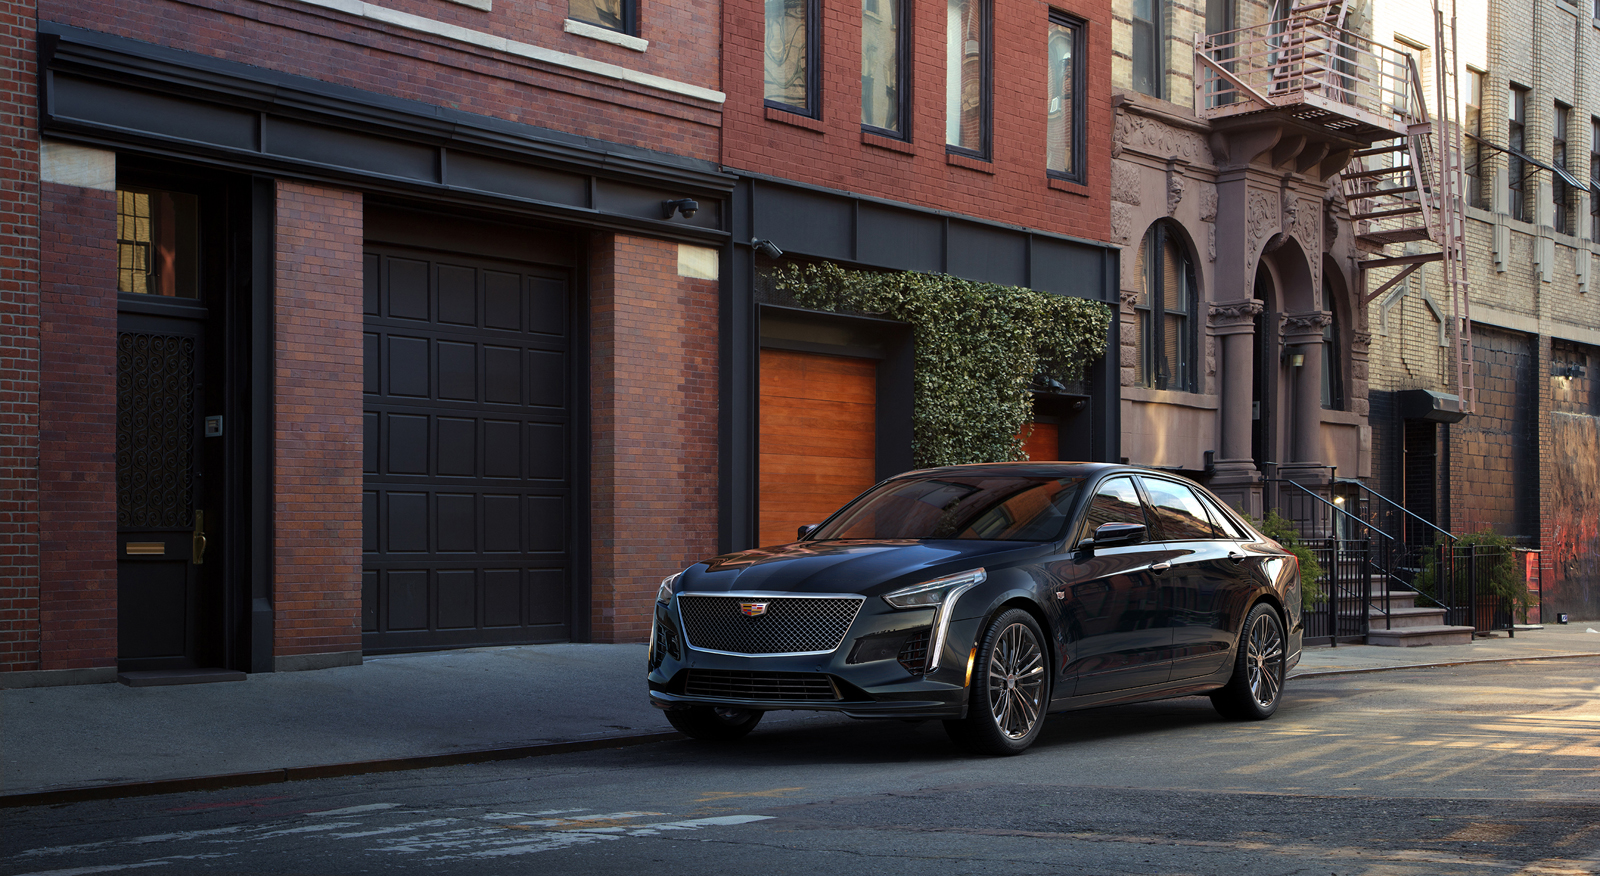 Ct6 Archives Gm Inside News